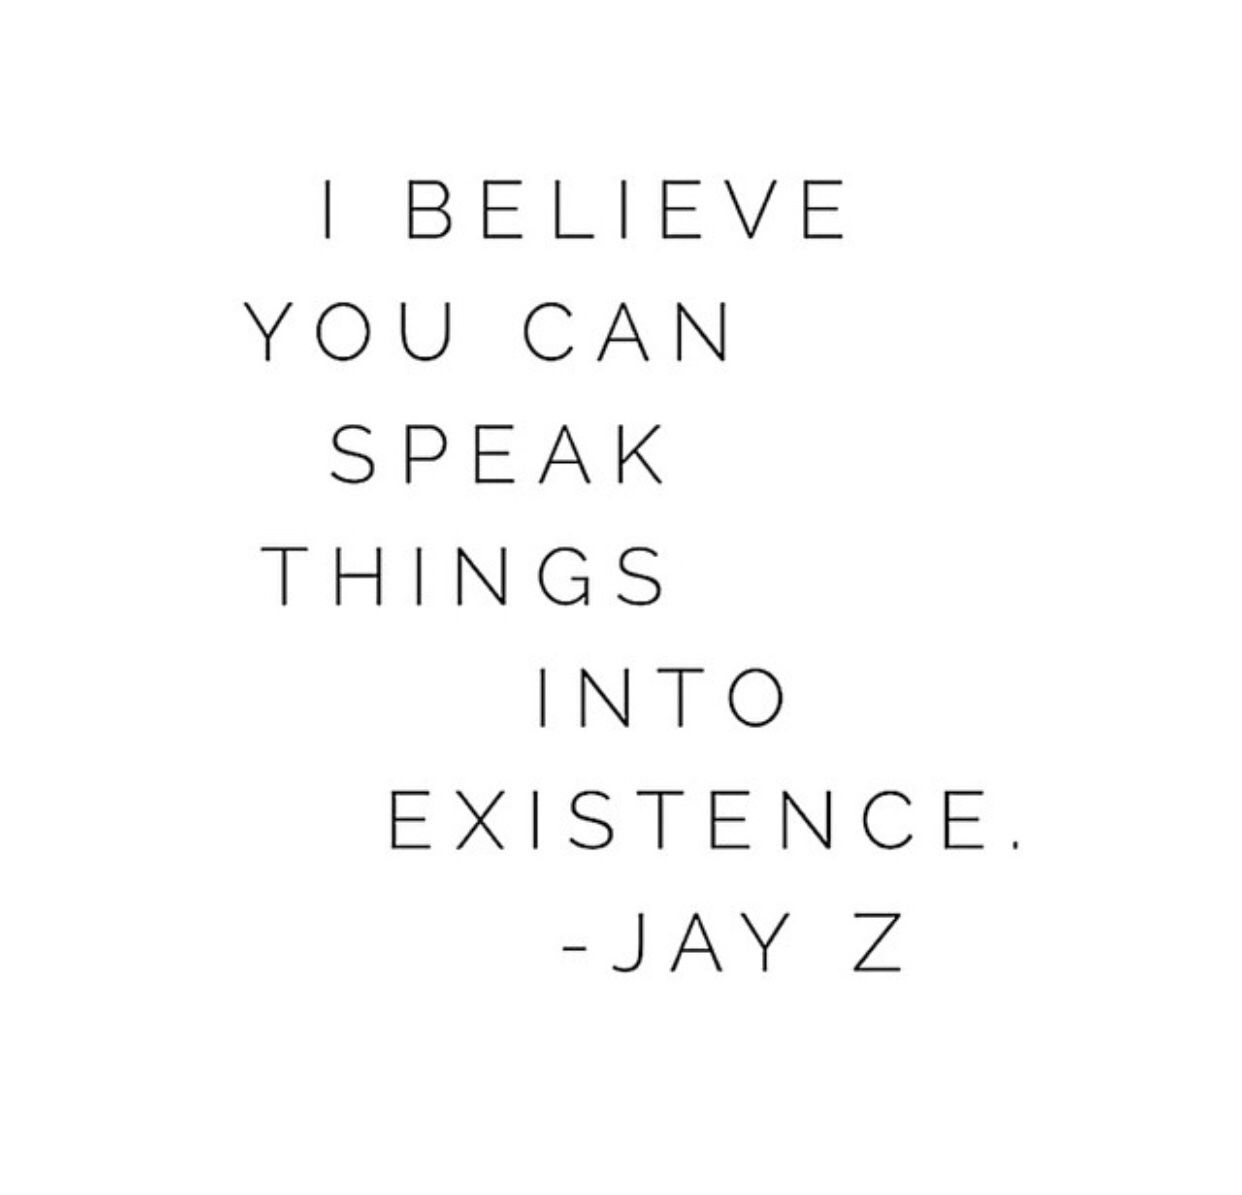 I believe you can speak things into existence. - Jay Z